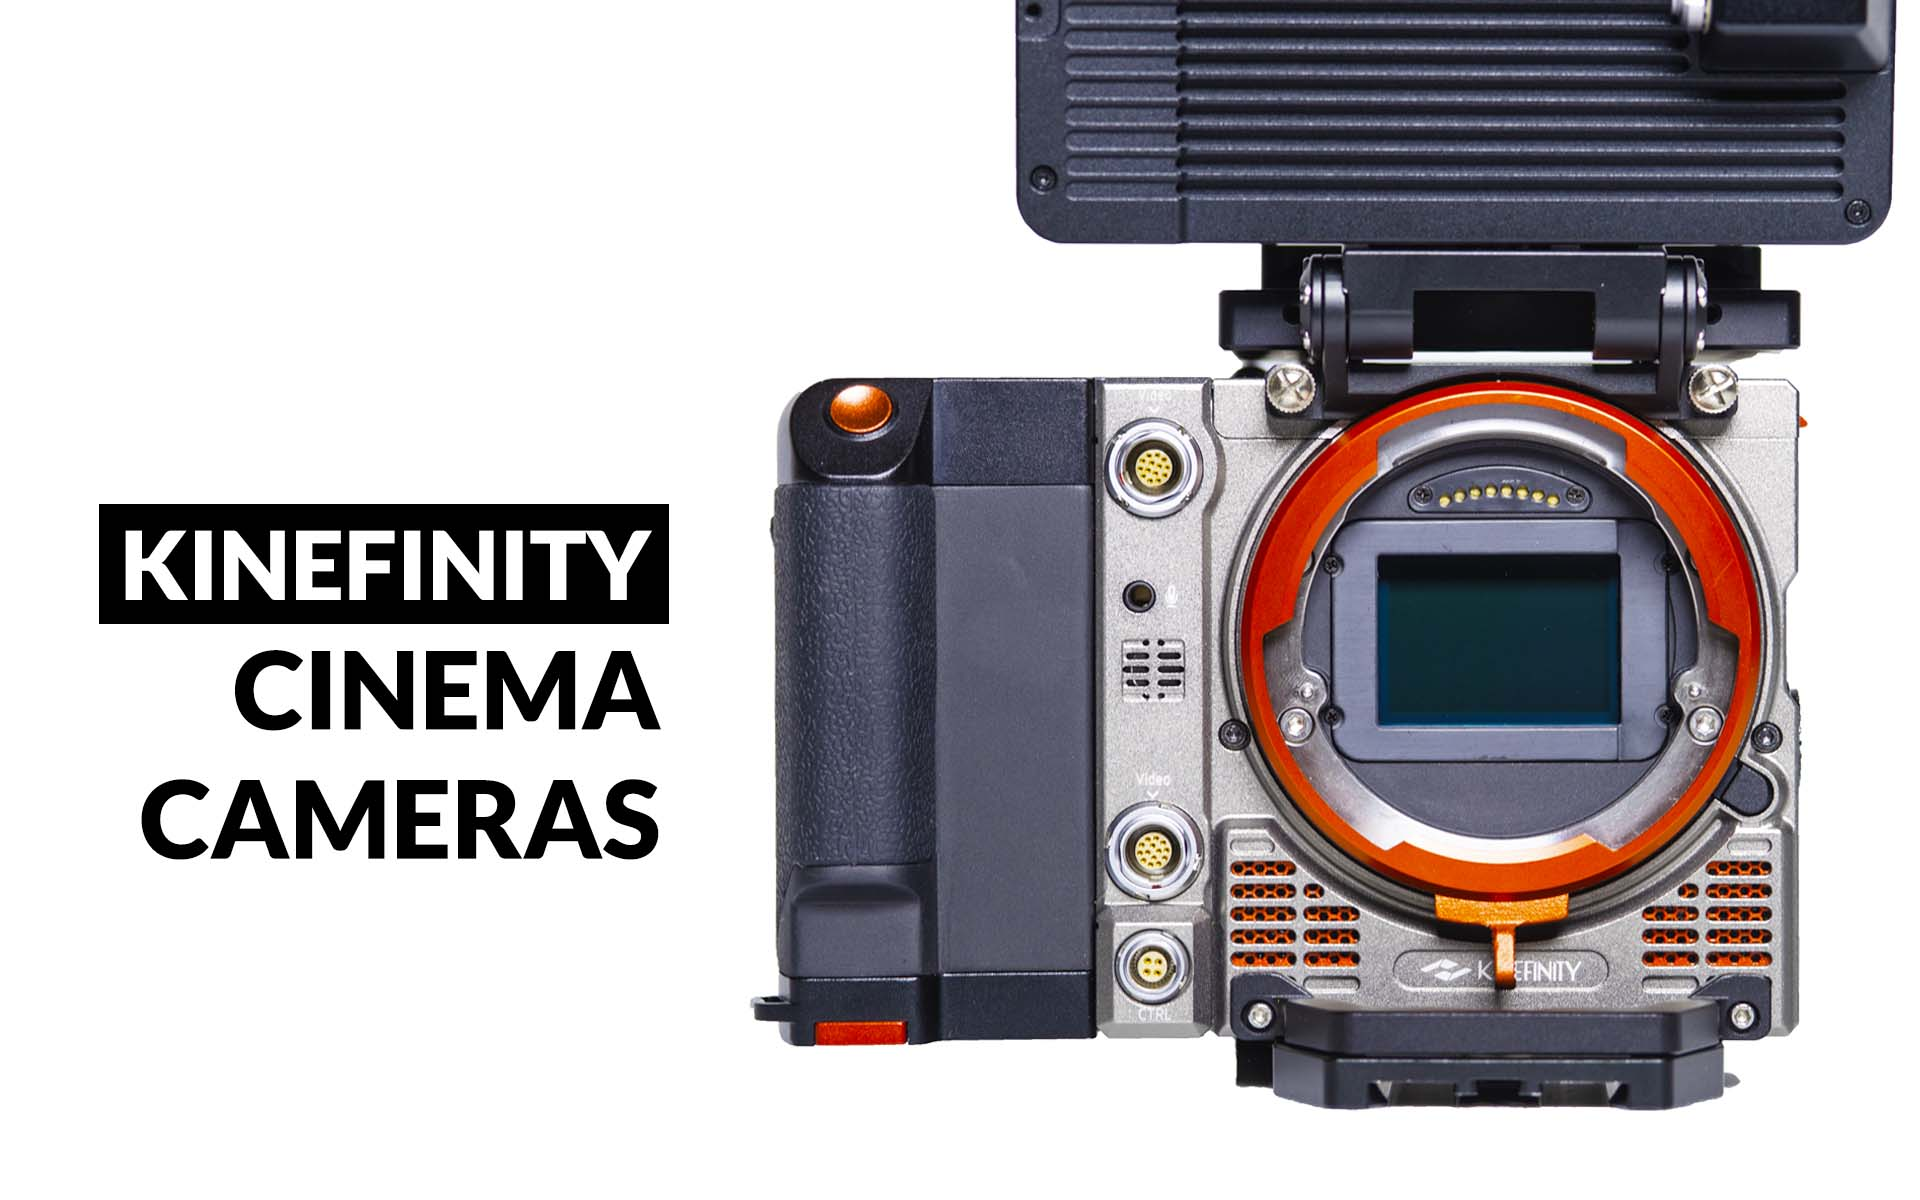 https://kinefinity.amsterdam/product-category/kine-cameras/